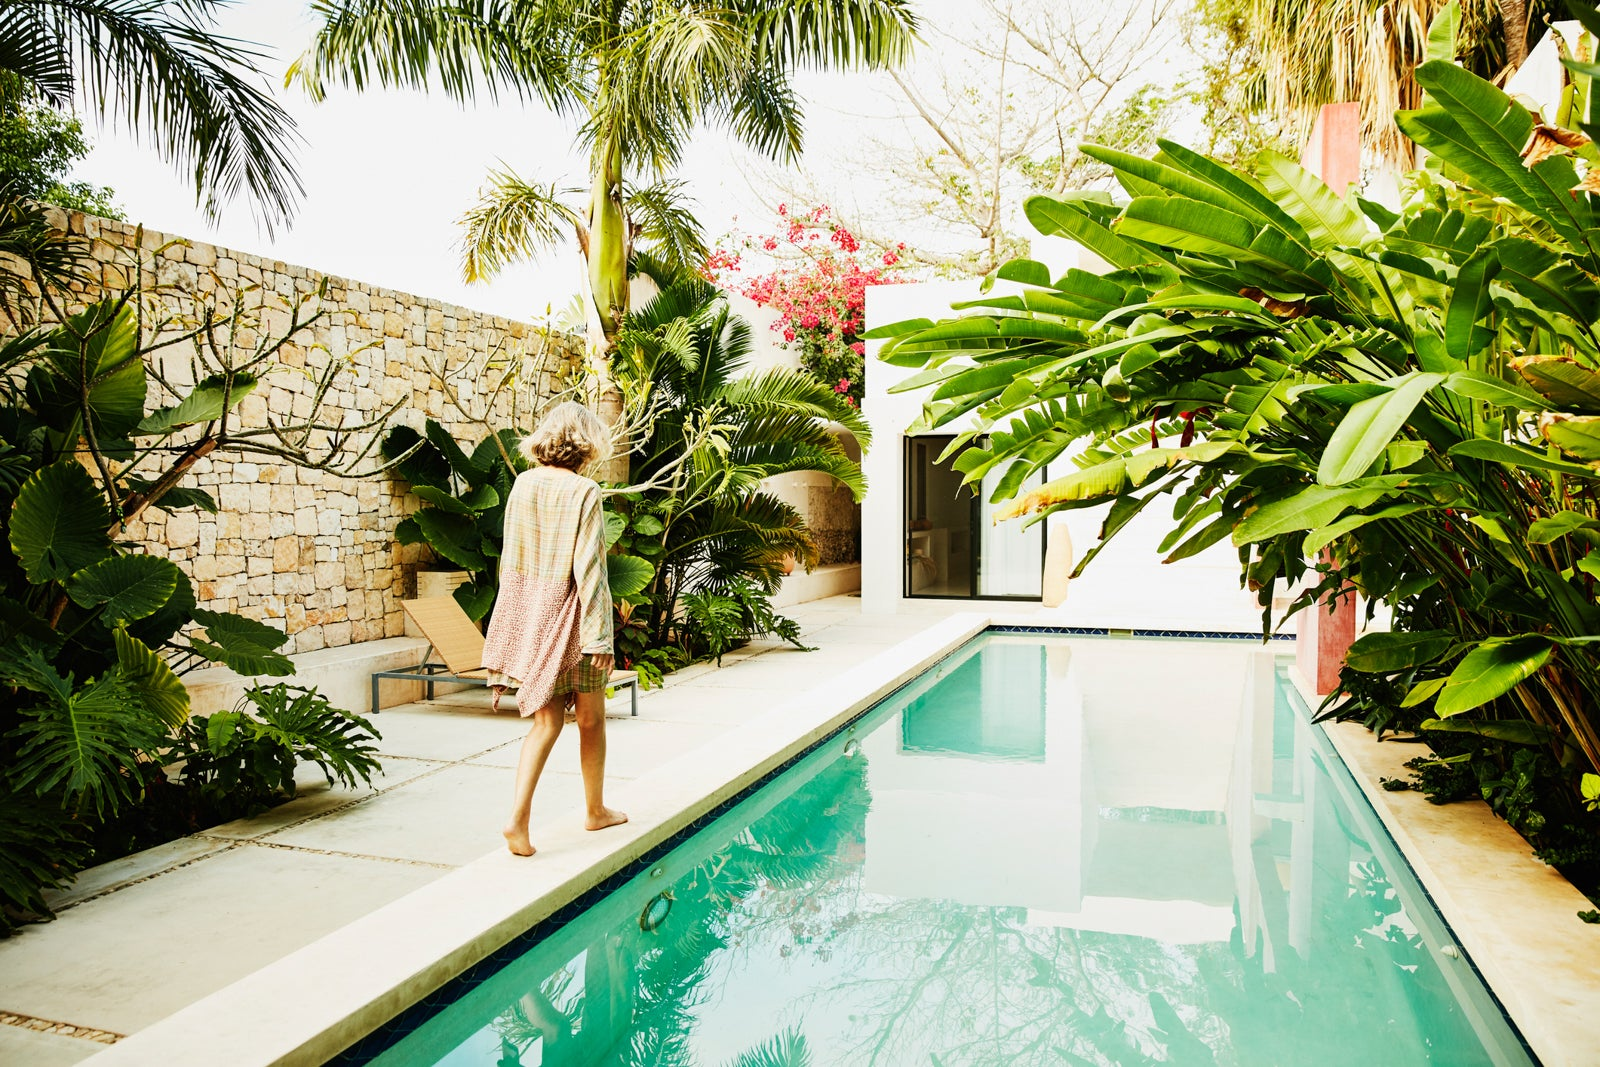 The best perks of working from a hotel or resort